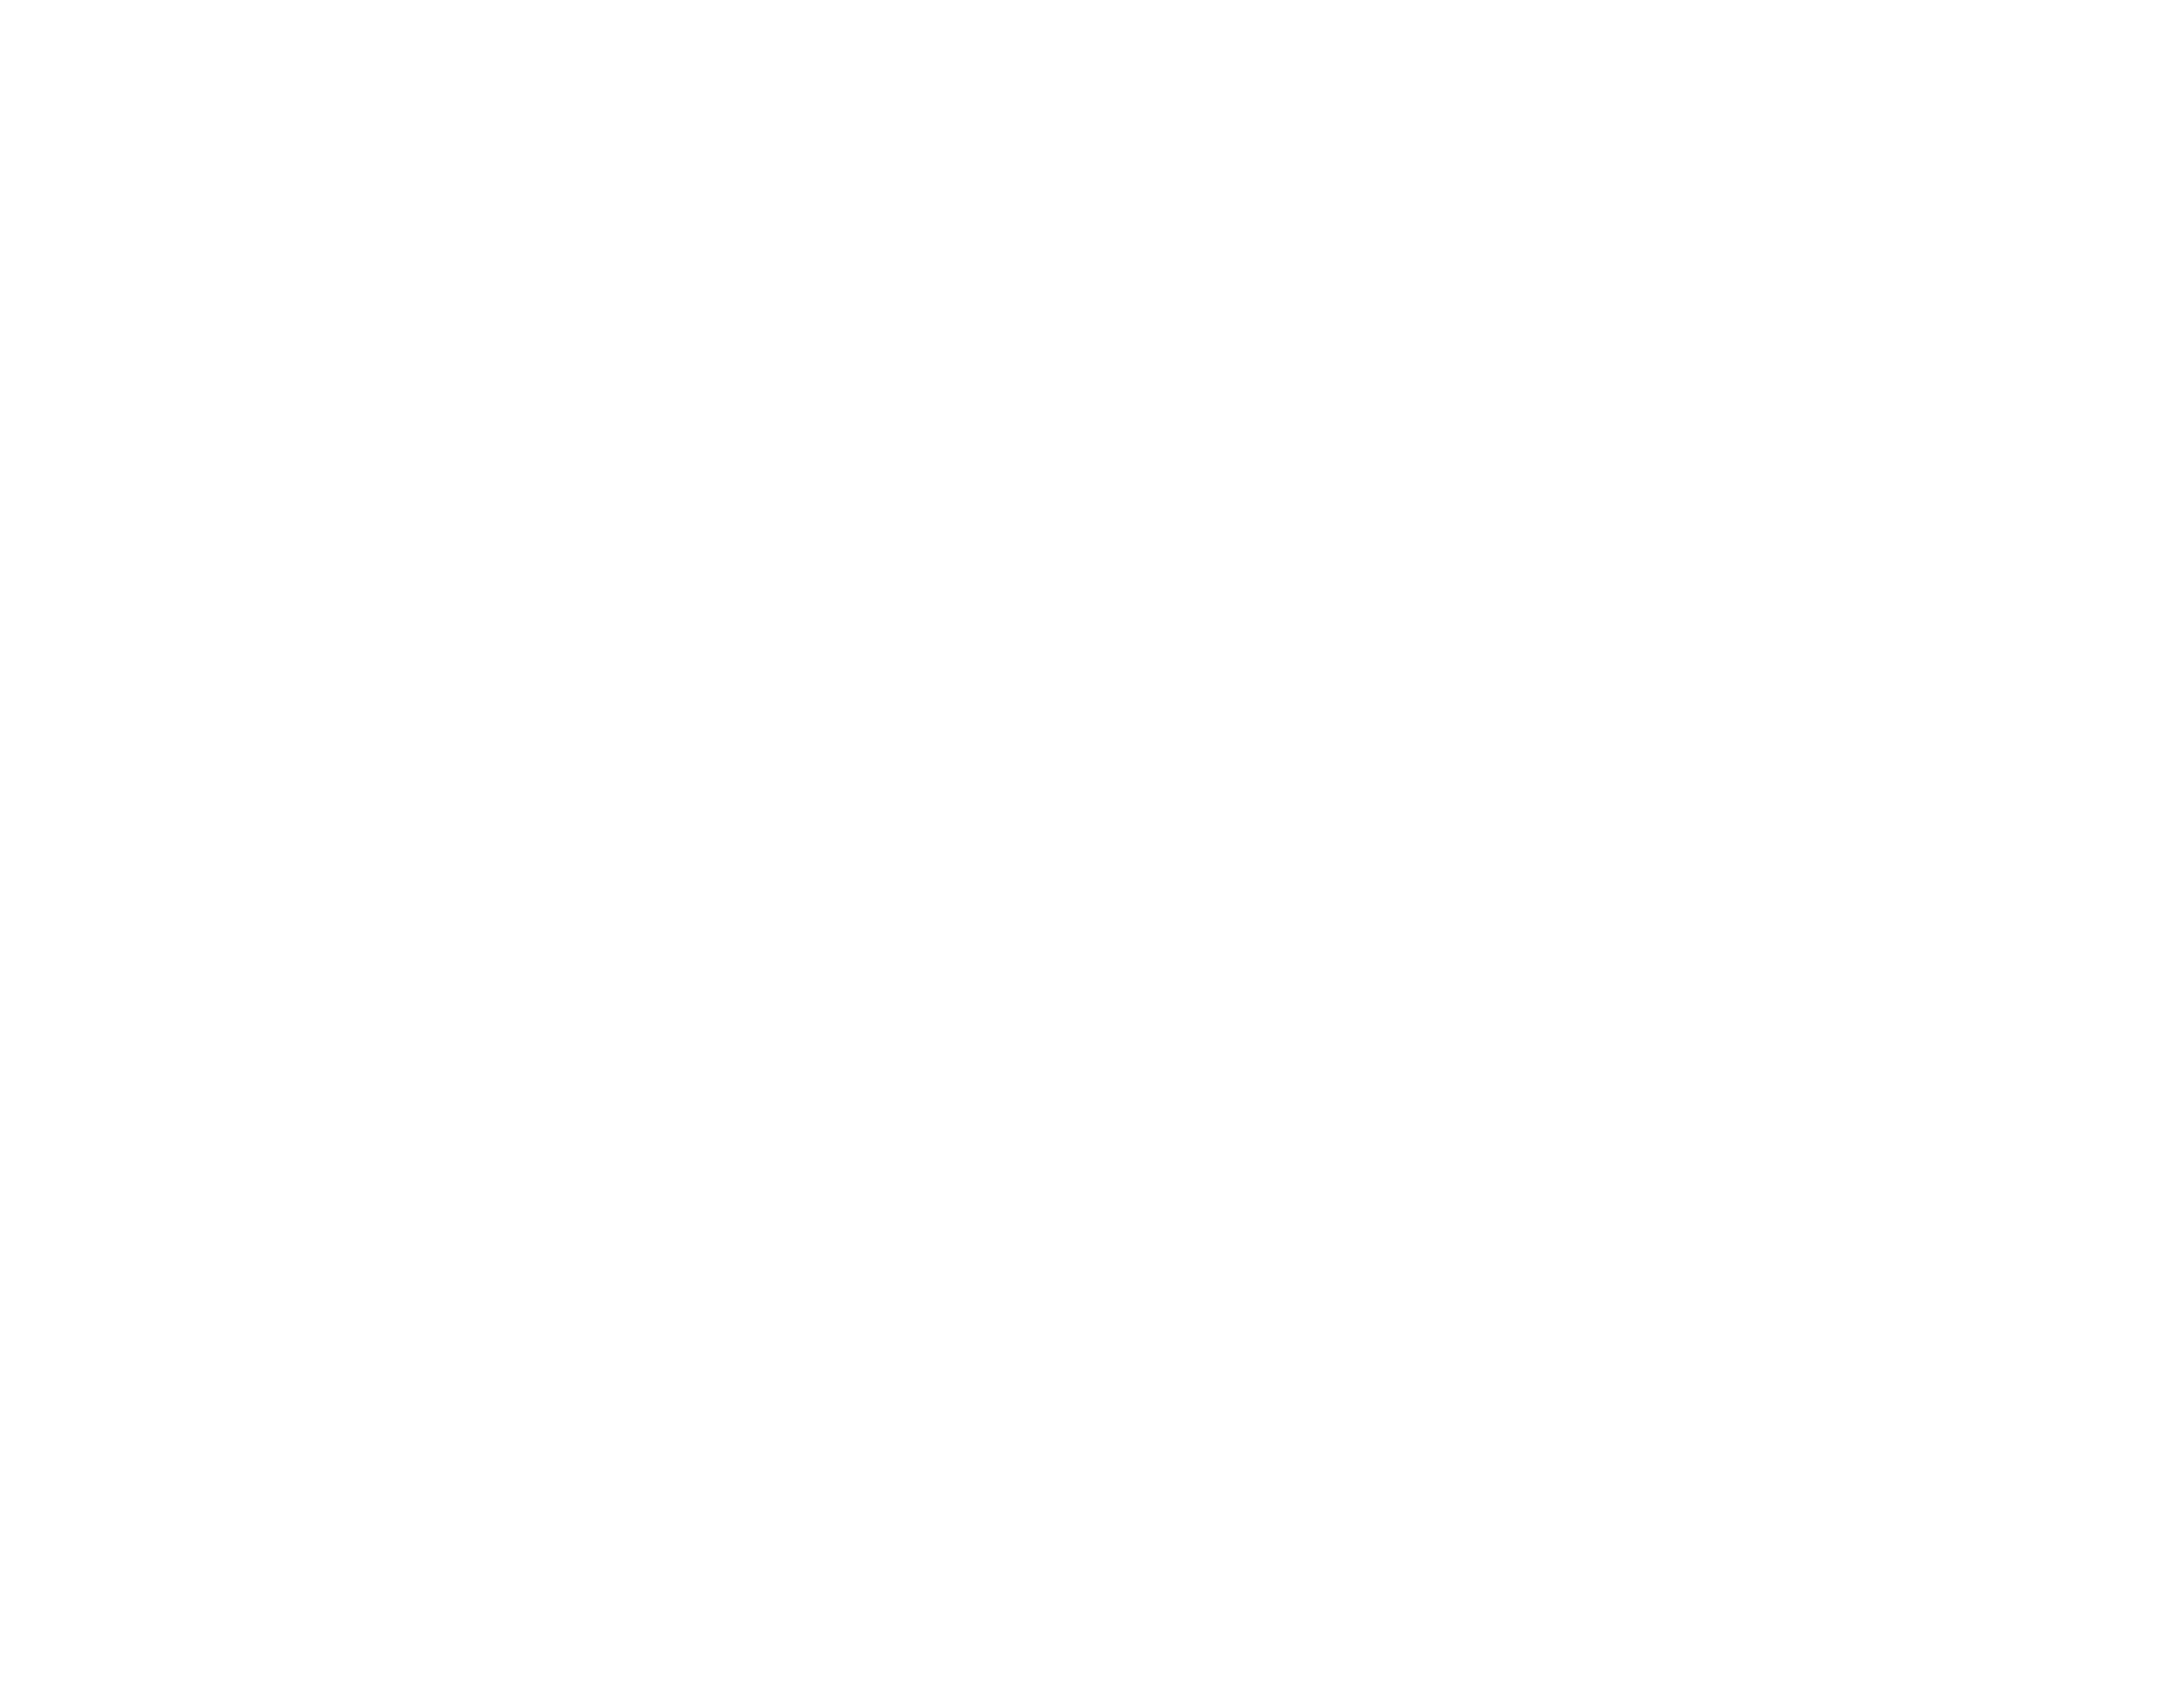 Proposta d'un nou model d'horari per a l'escola d'avui: promou la salut, el benestar i l'aprenentatge dels infants i adolescents, amplia les oportunitats educatives de l'alumnat integrant activitats lectives i opcionals dins d'un mateix projecte educatiu i s'adequa a les necessitats dels projectes d'innovació i transformació pedagògica.